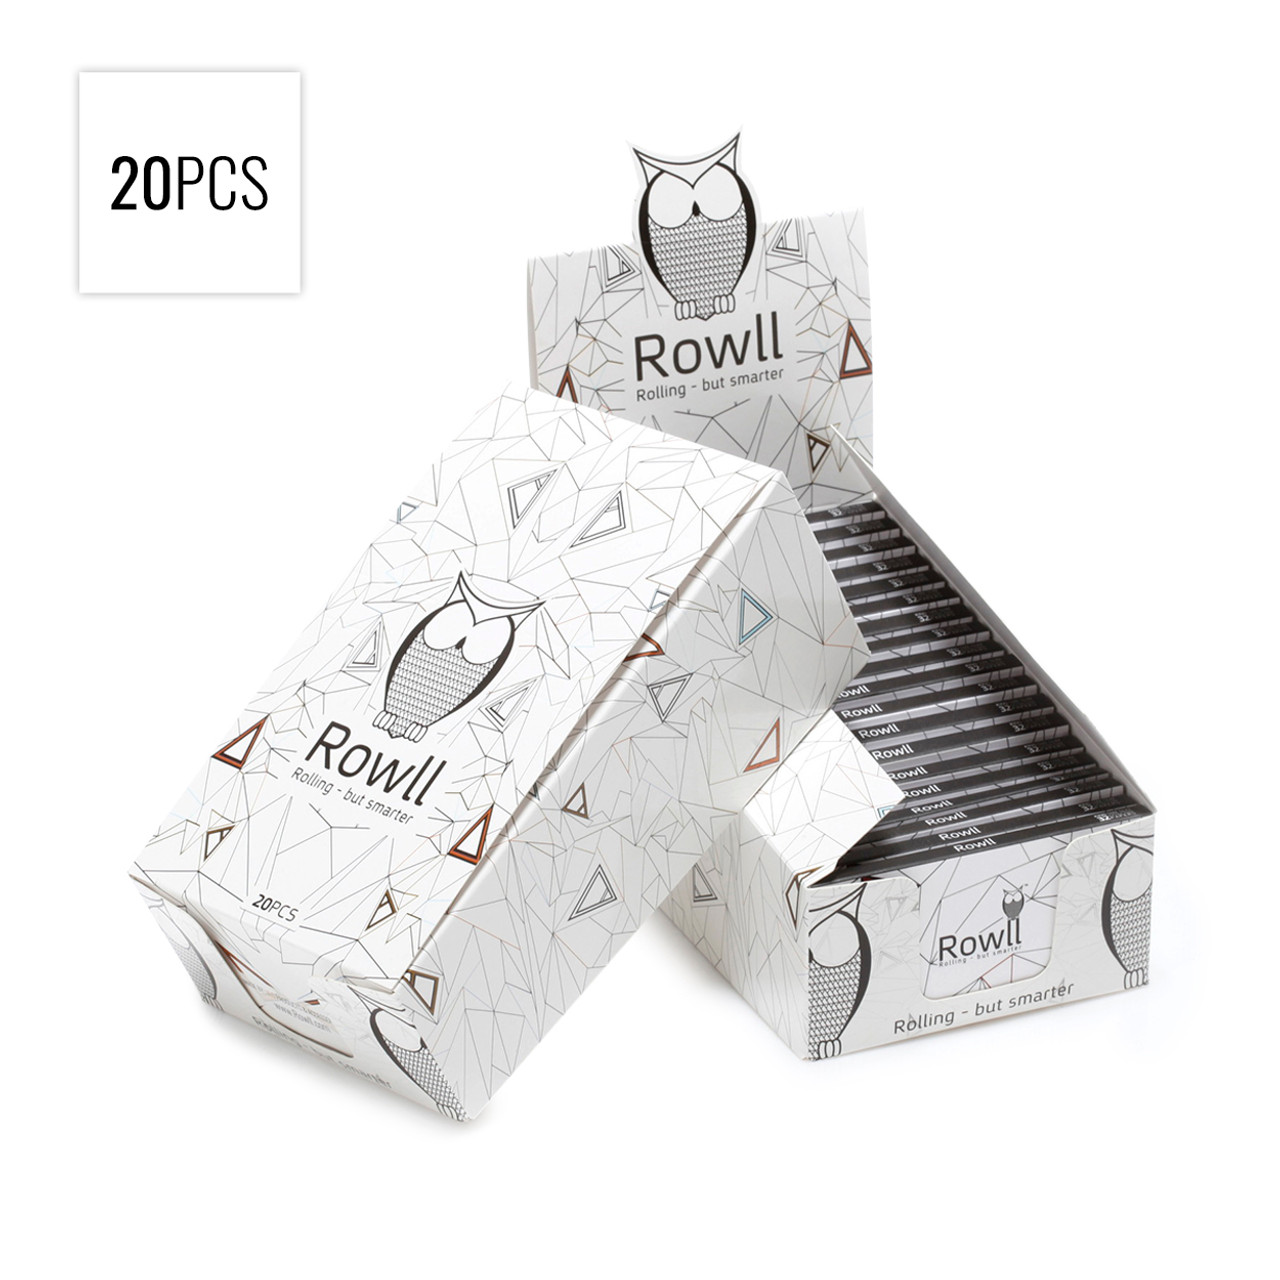 Rowll - King Size Extra Slim Rolling Papers w/ Filters, Grinder & Rolling Surface (Display of 20 w/ 32 Papers per Pack)